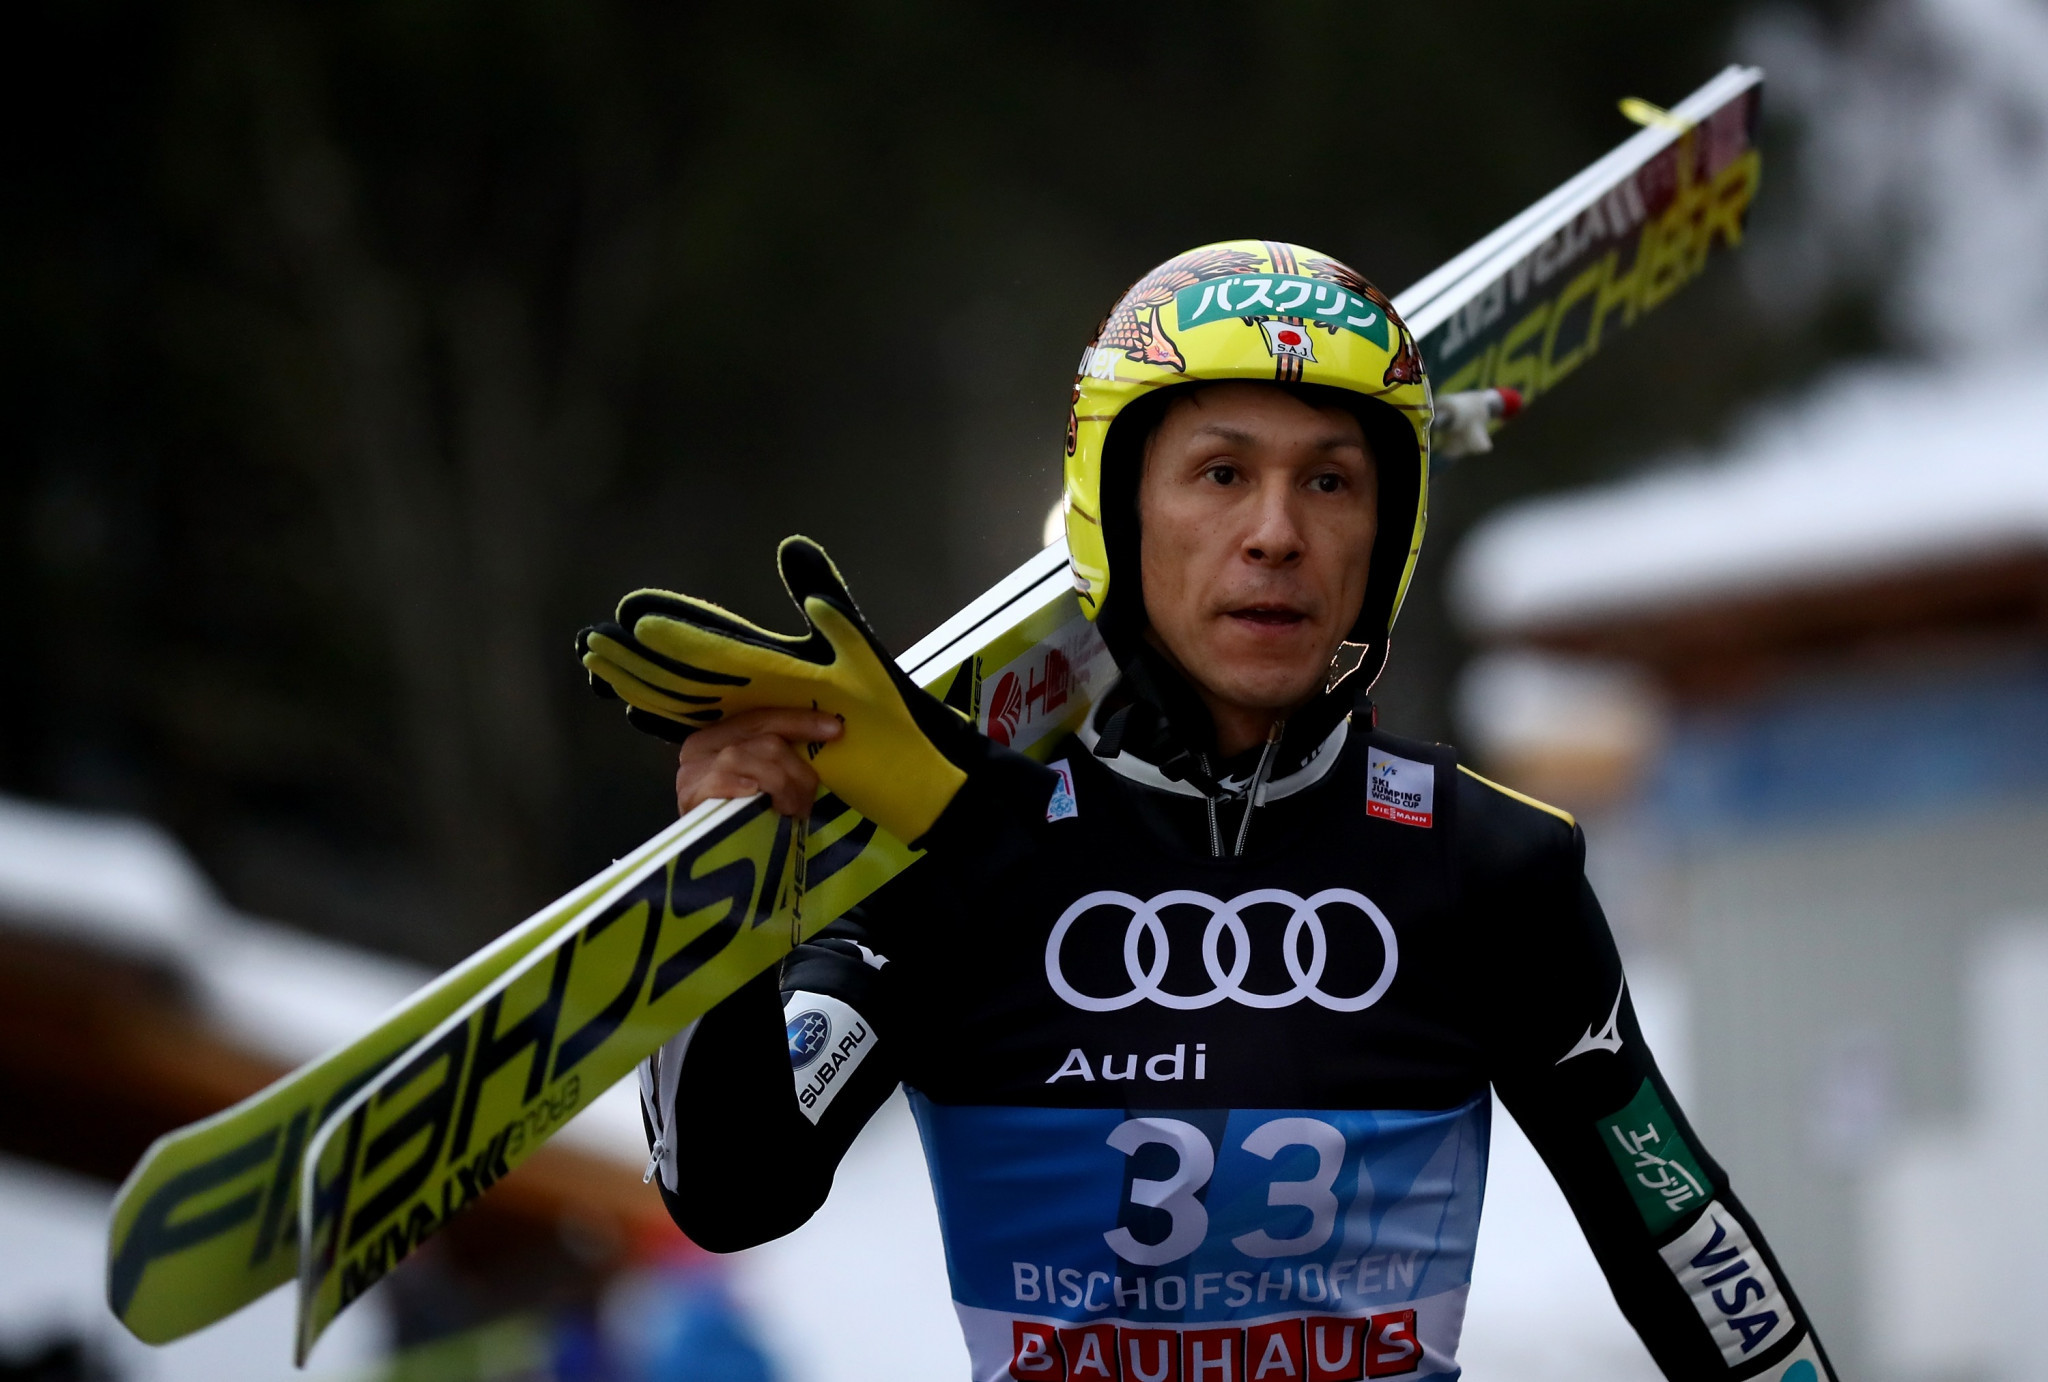 Ski jumper Kasai set to make record eighth Winter Olympics appearance at Pyeongchang 2018